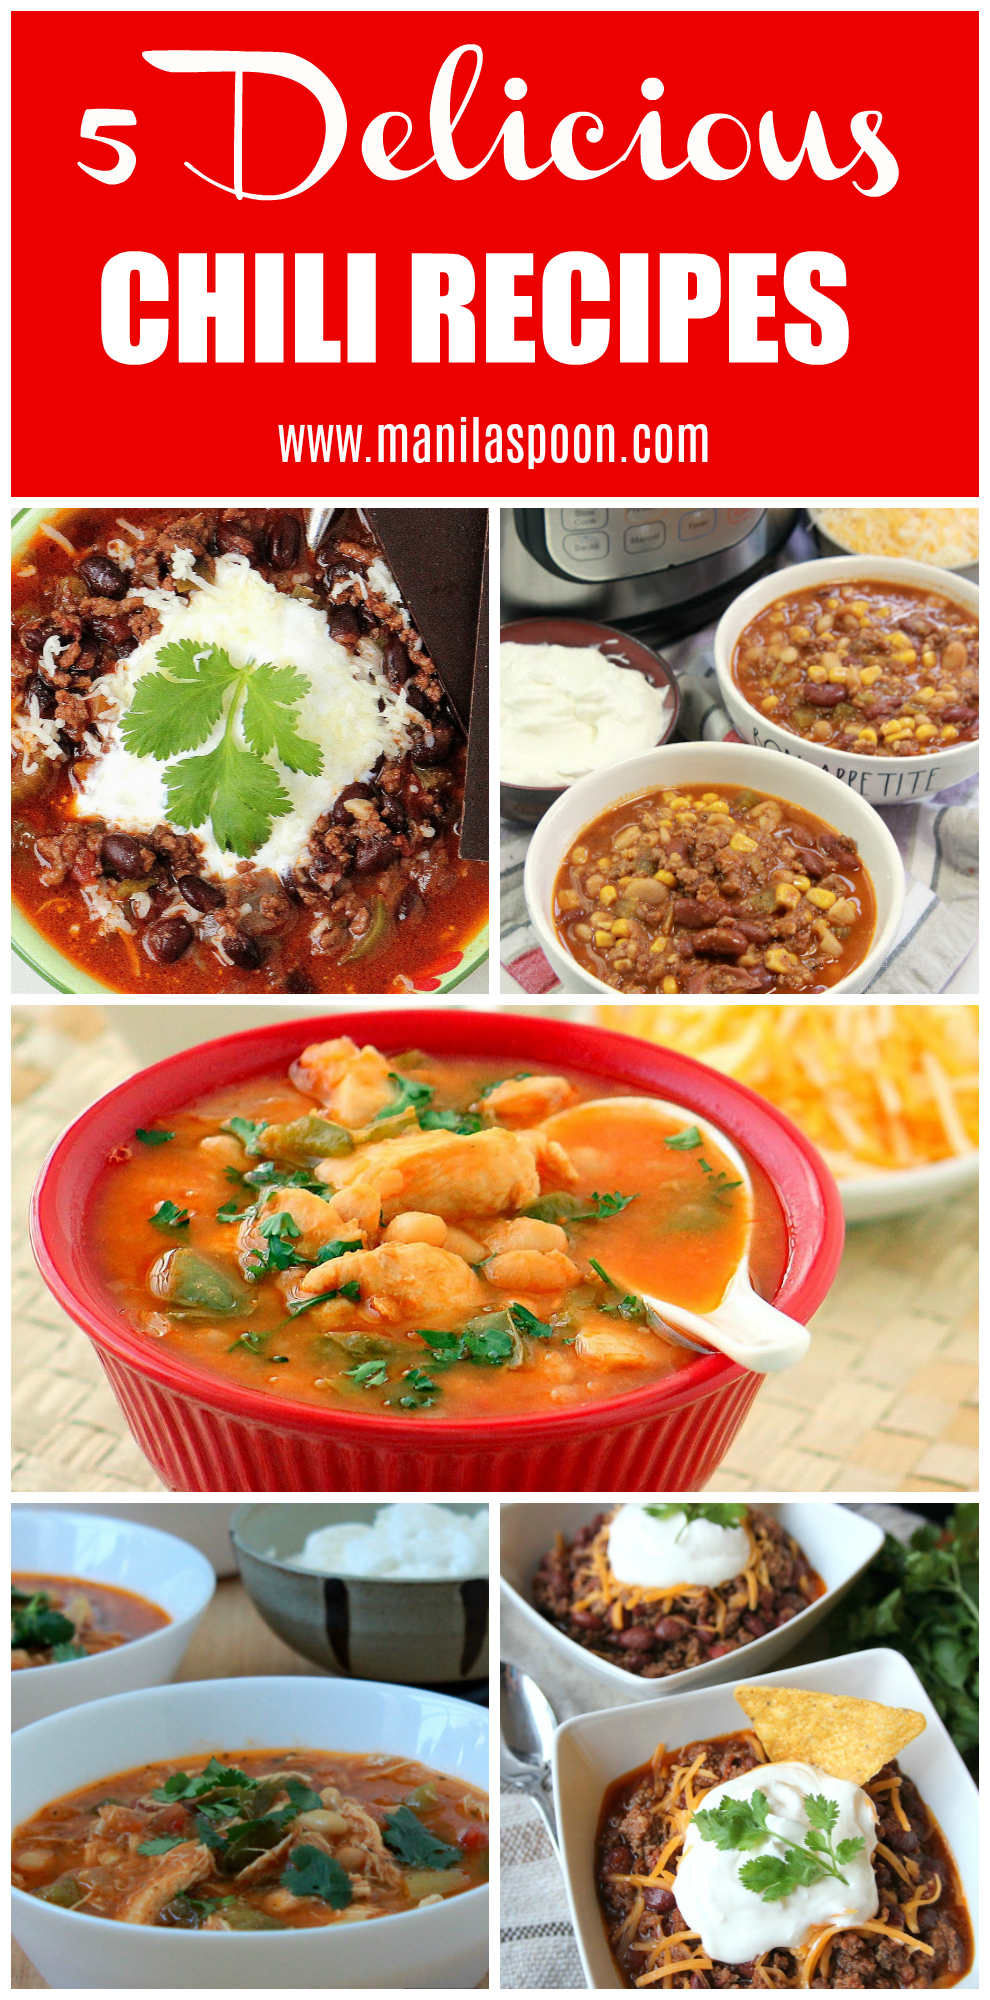 No need to go for the same old, same old chili recipe as we give you these 5 easy and delicious chili recipes for your whole family to enjoy this winter season! #chili #easyrecipes